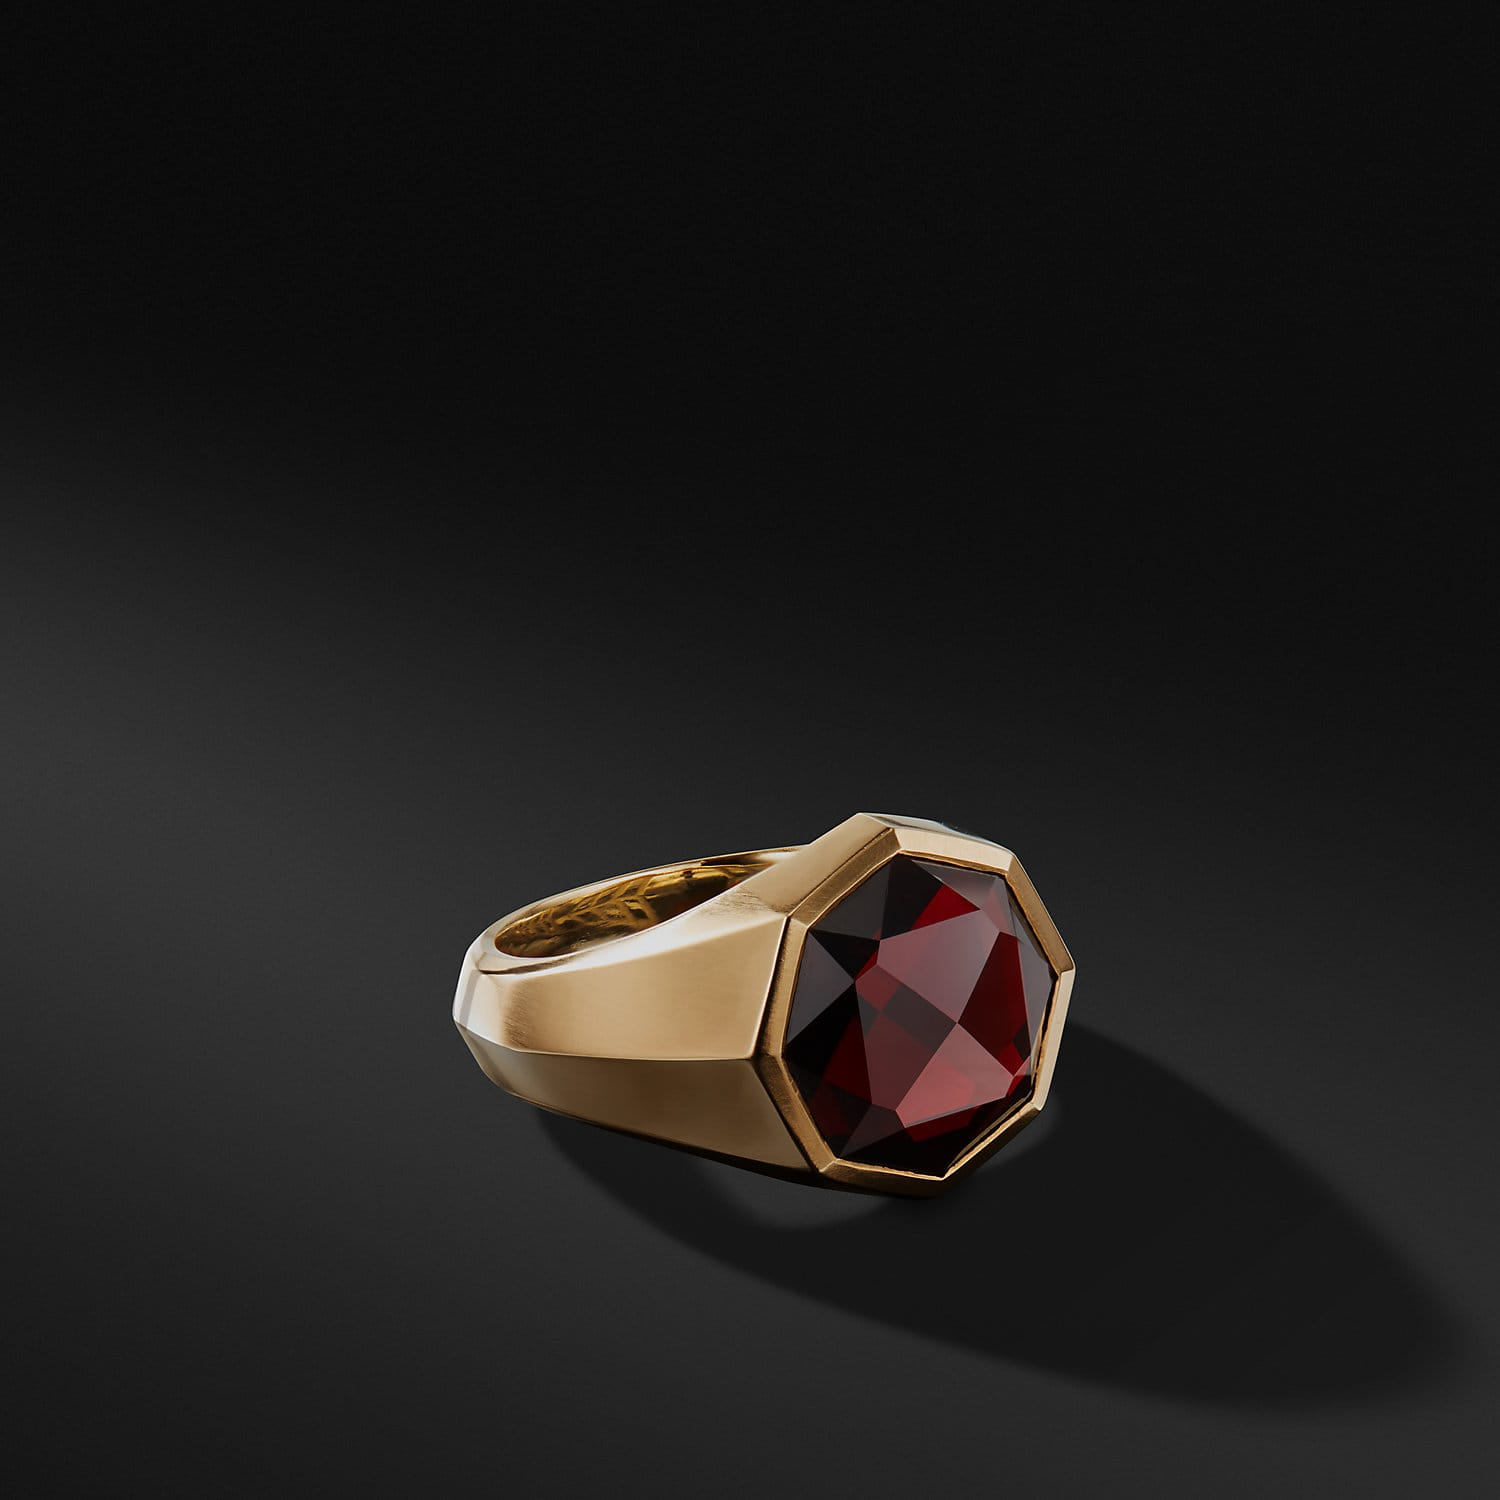 DY Fortune Faceted Signet Ring in 18K Gold | David Yurman